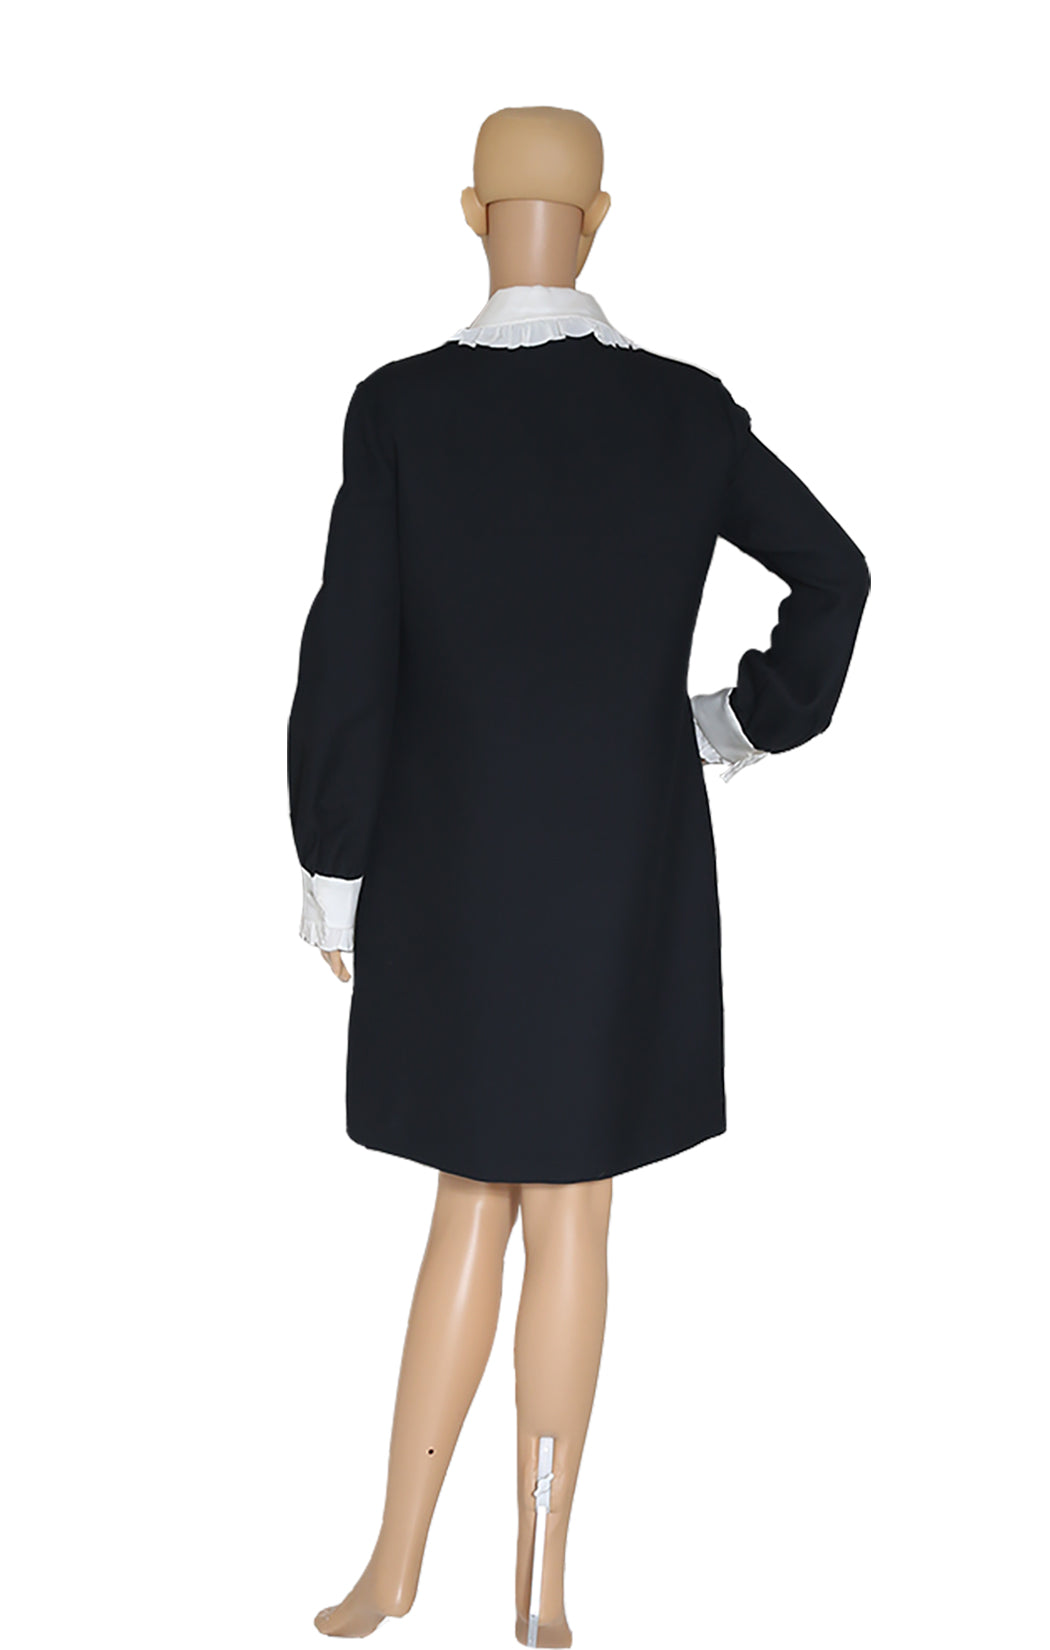 Back view of GUCCI Black and White Collared Dress with Tags